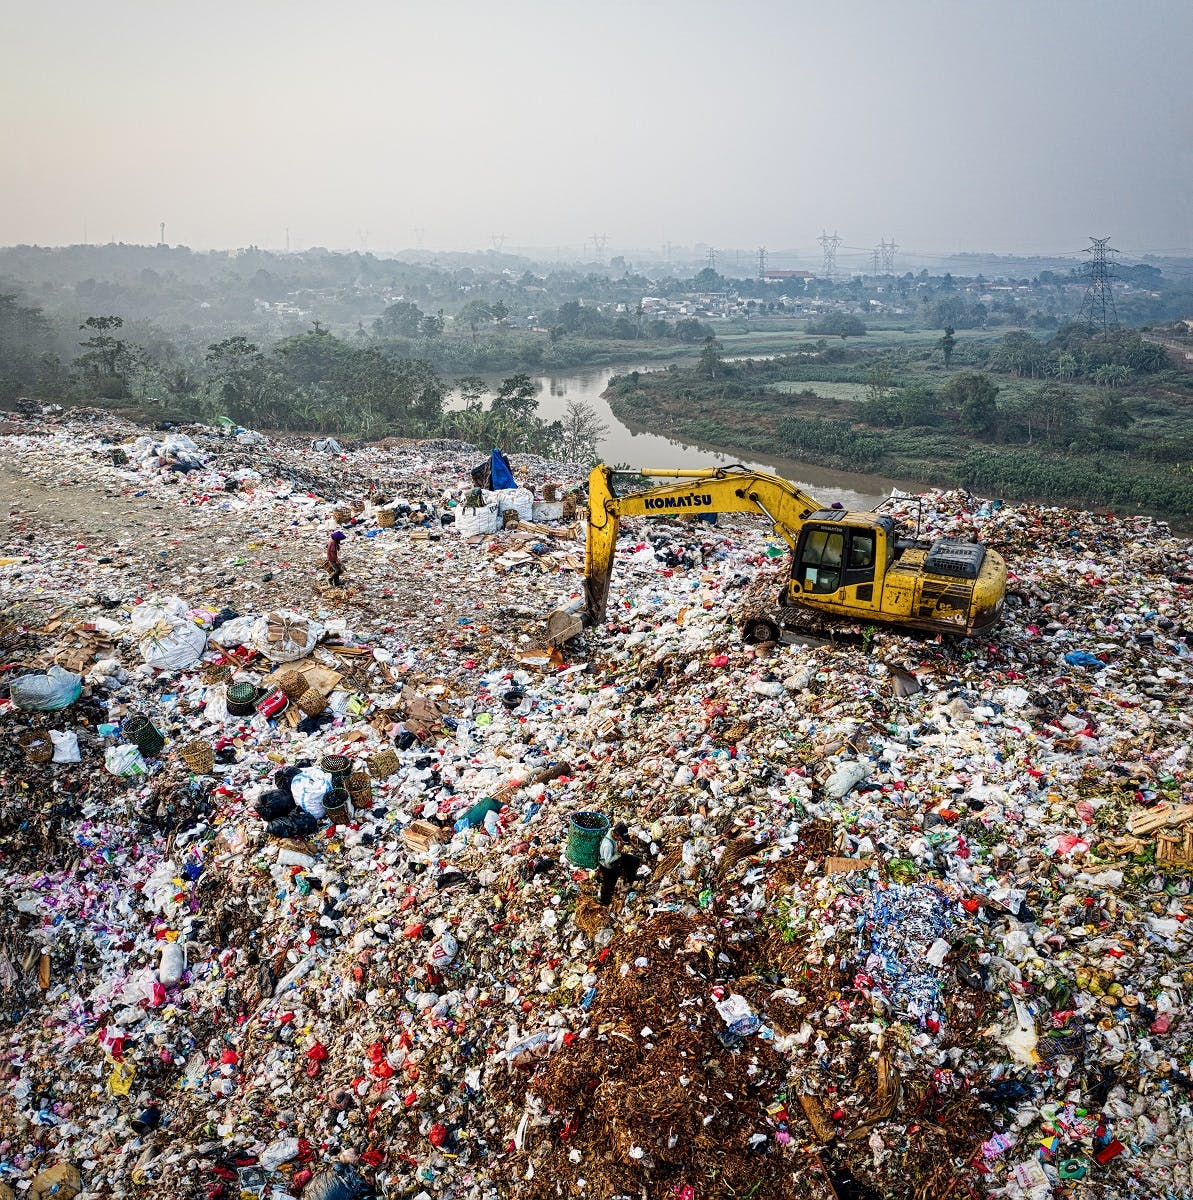 An excavator moving waste at a landfill site.  Let's keep clothing out of landfill by choosing to repair, reuse, recycle our garments.